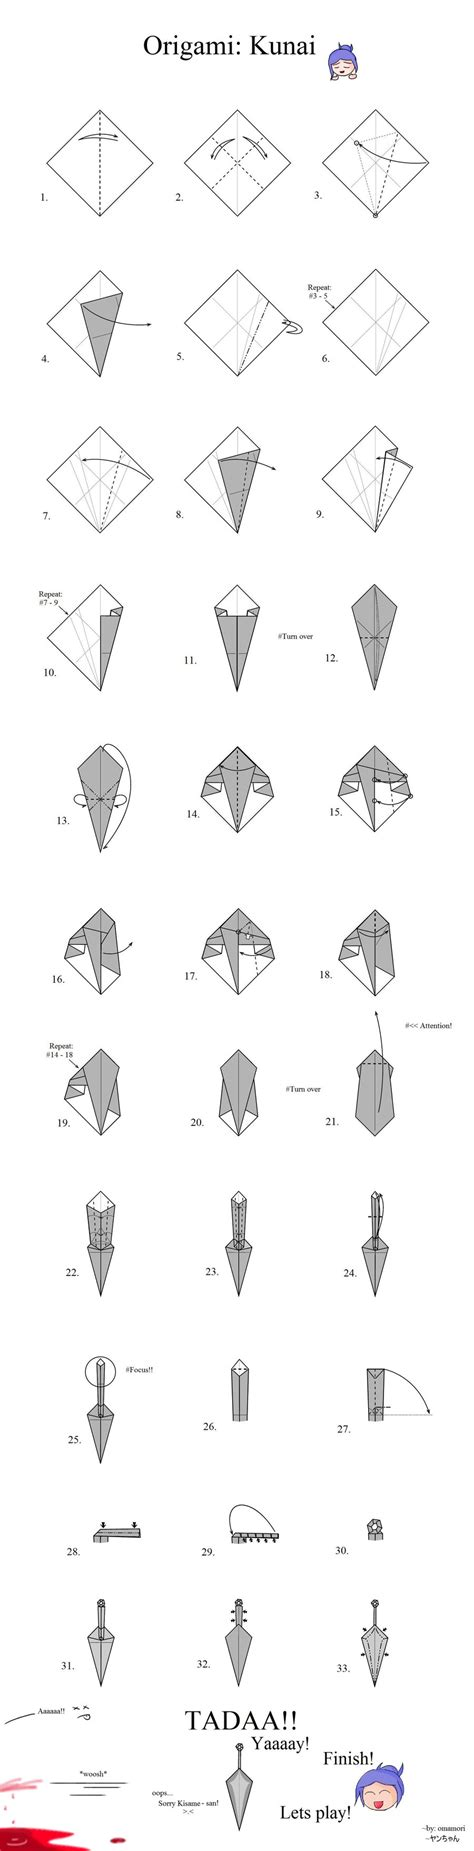 How To Make Origami Sword Step By Step - tutorial origami kunai by mahou no omamori on deviantart